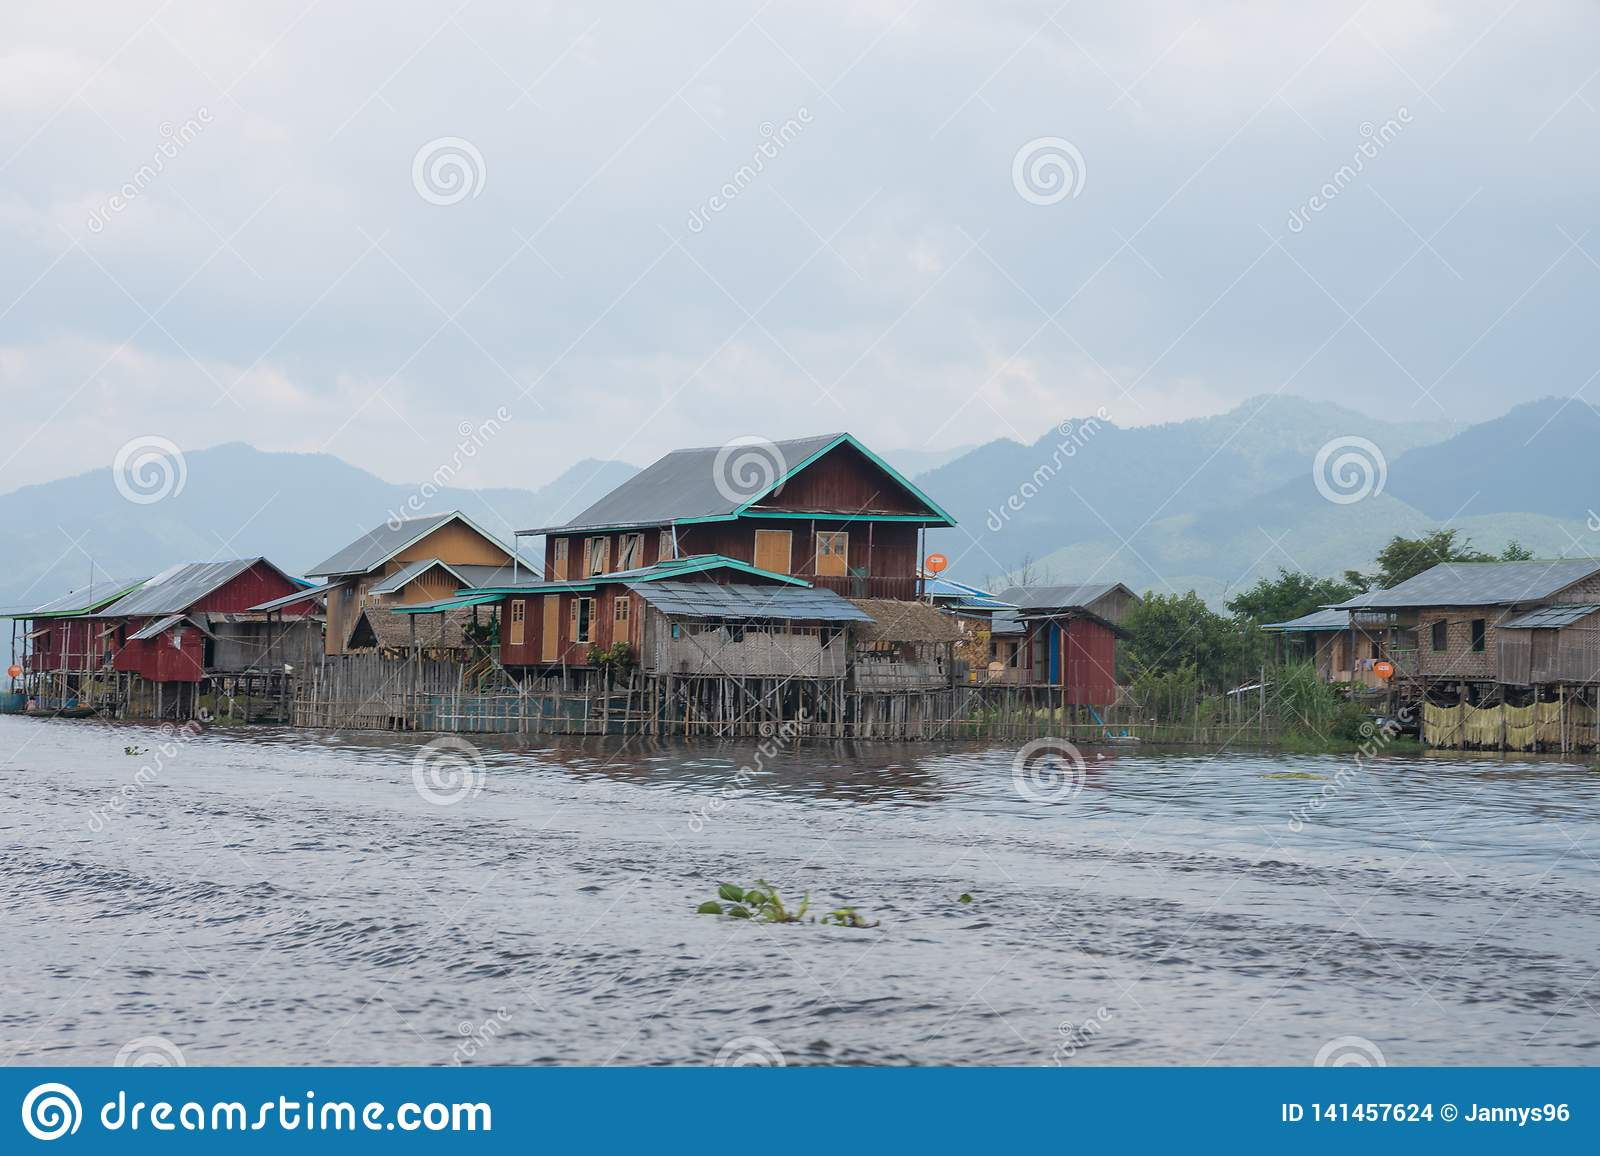 Colorful houses on famous inle lake in central myanmar